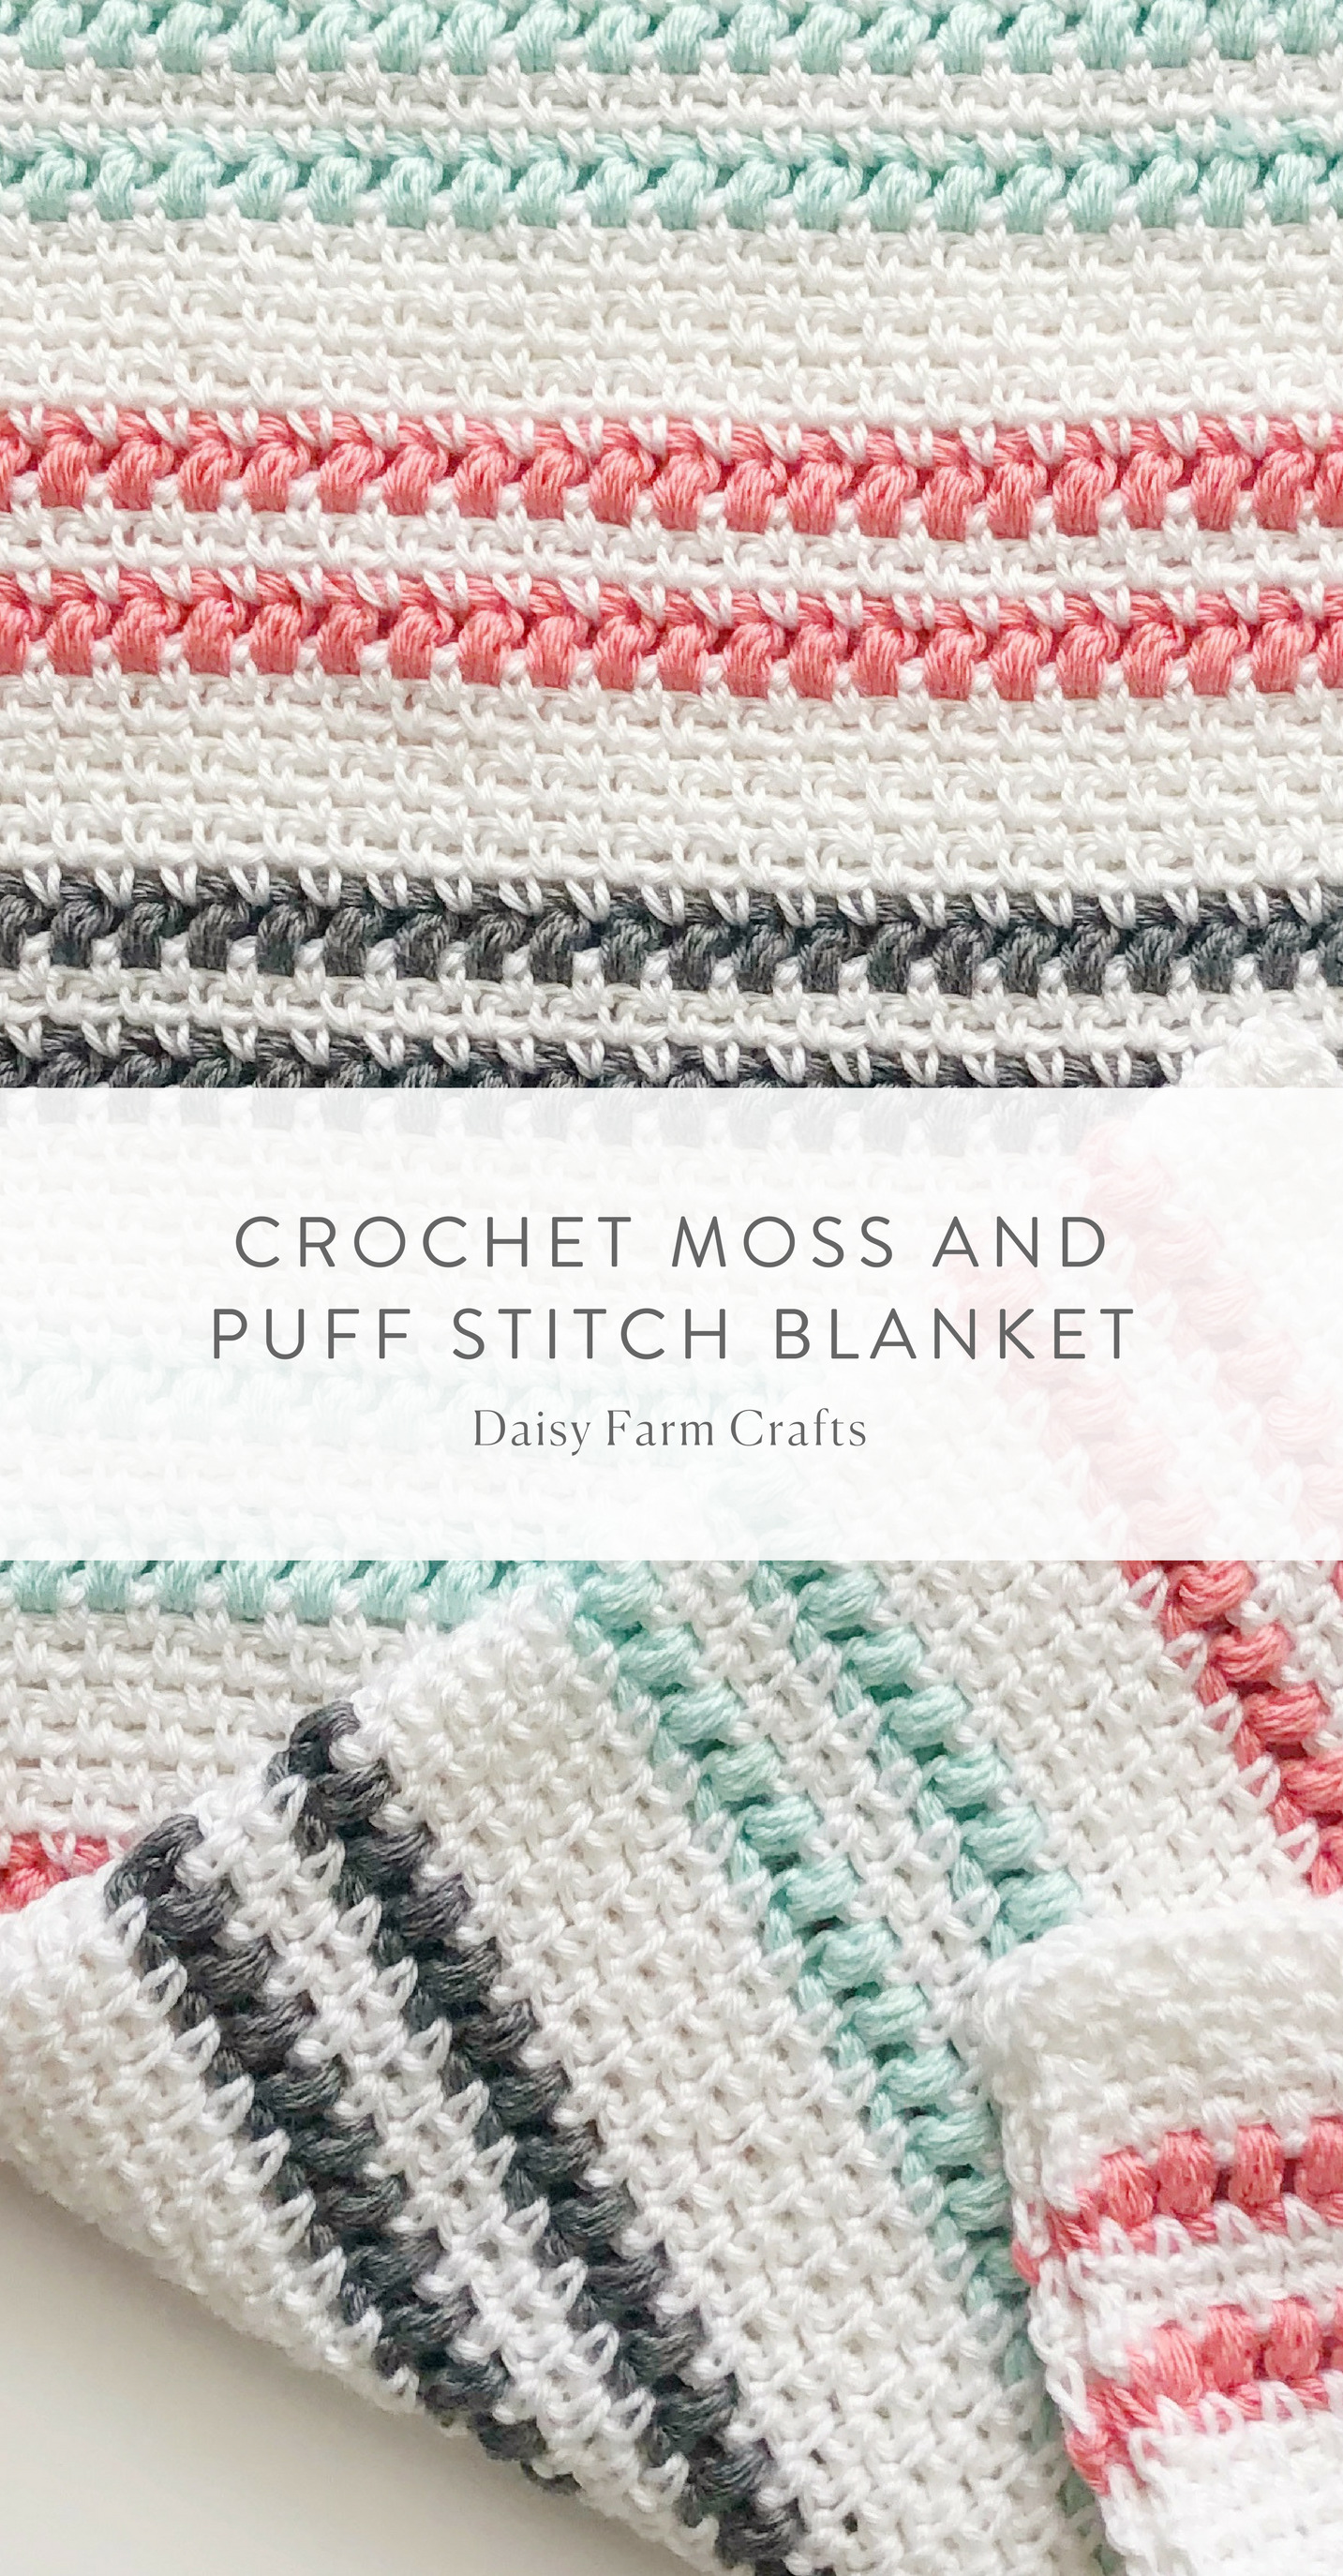 Free Pattern - Crochet Moss and Puff Stitch Blanket | Crochet ...